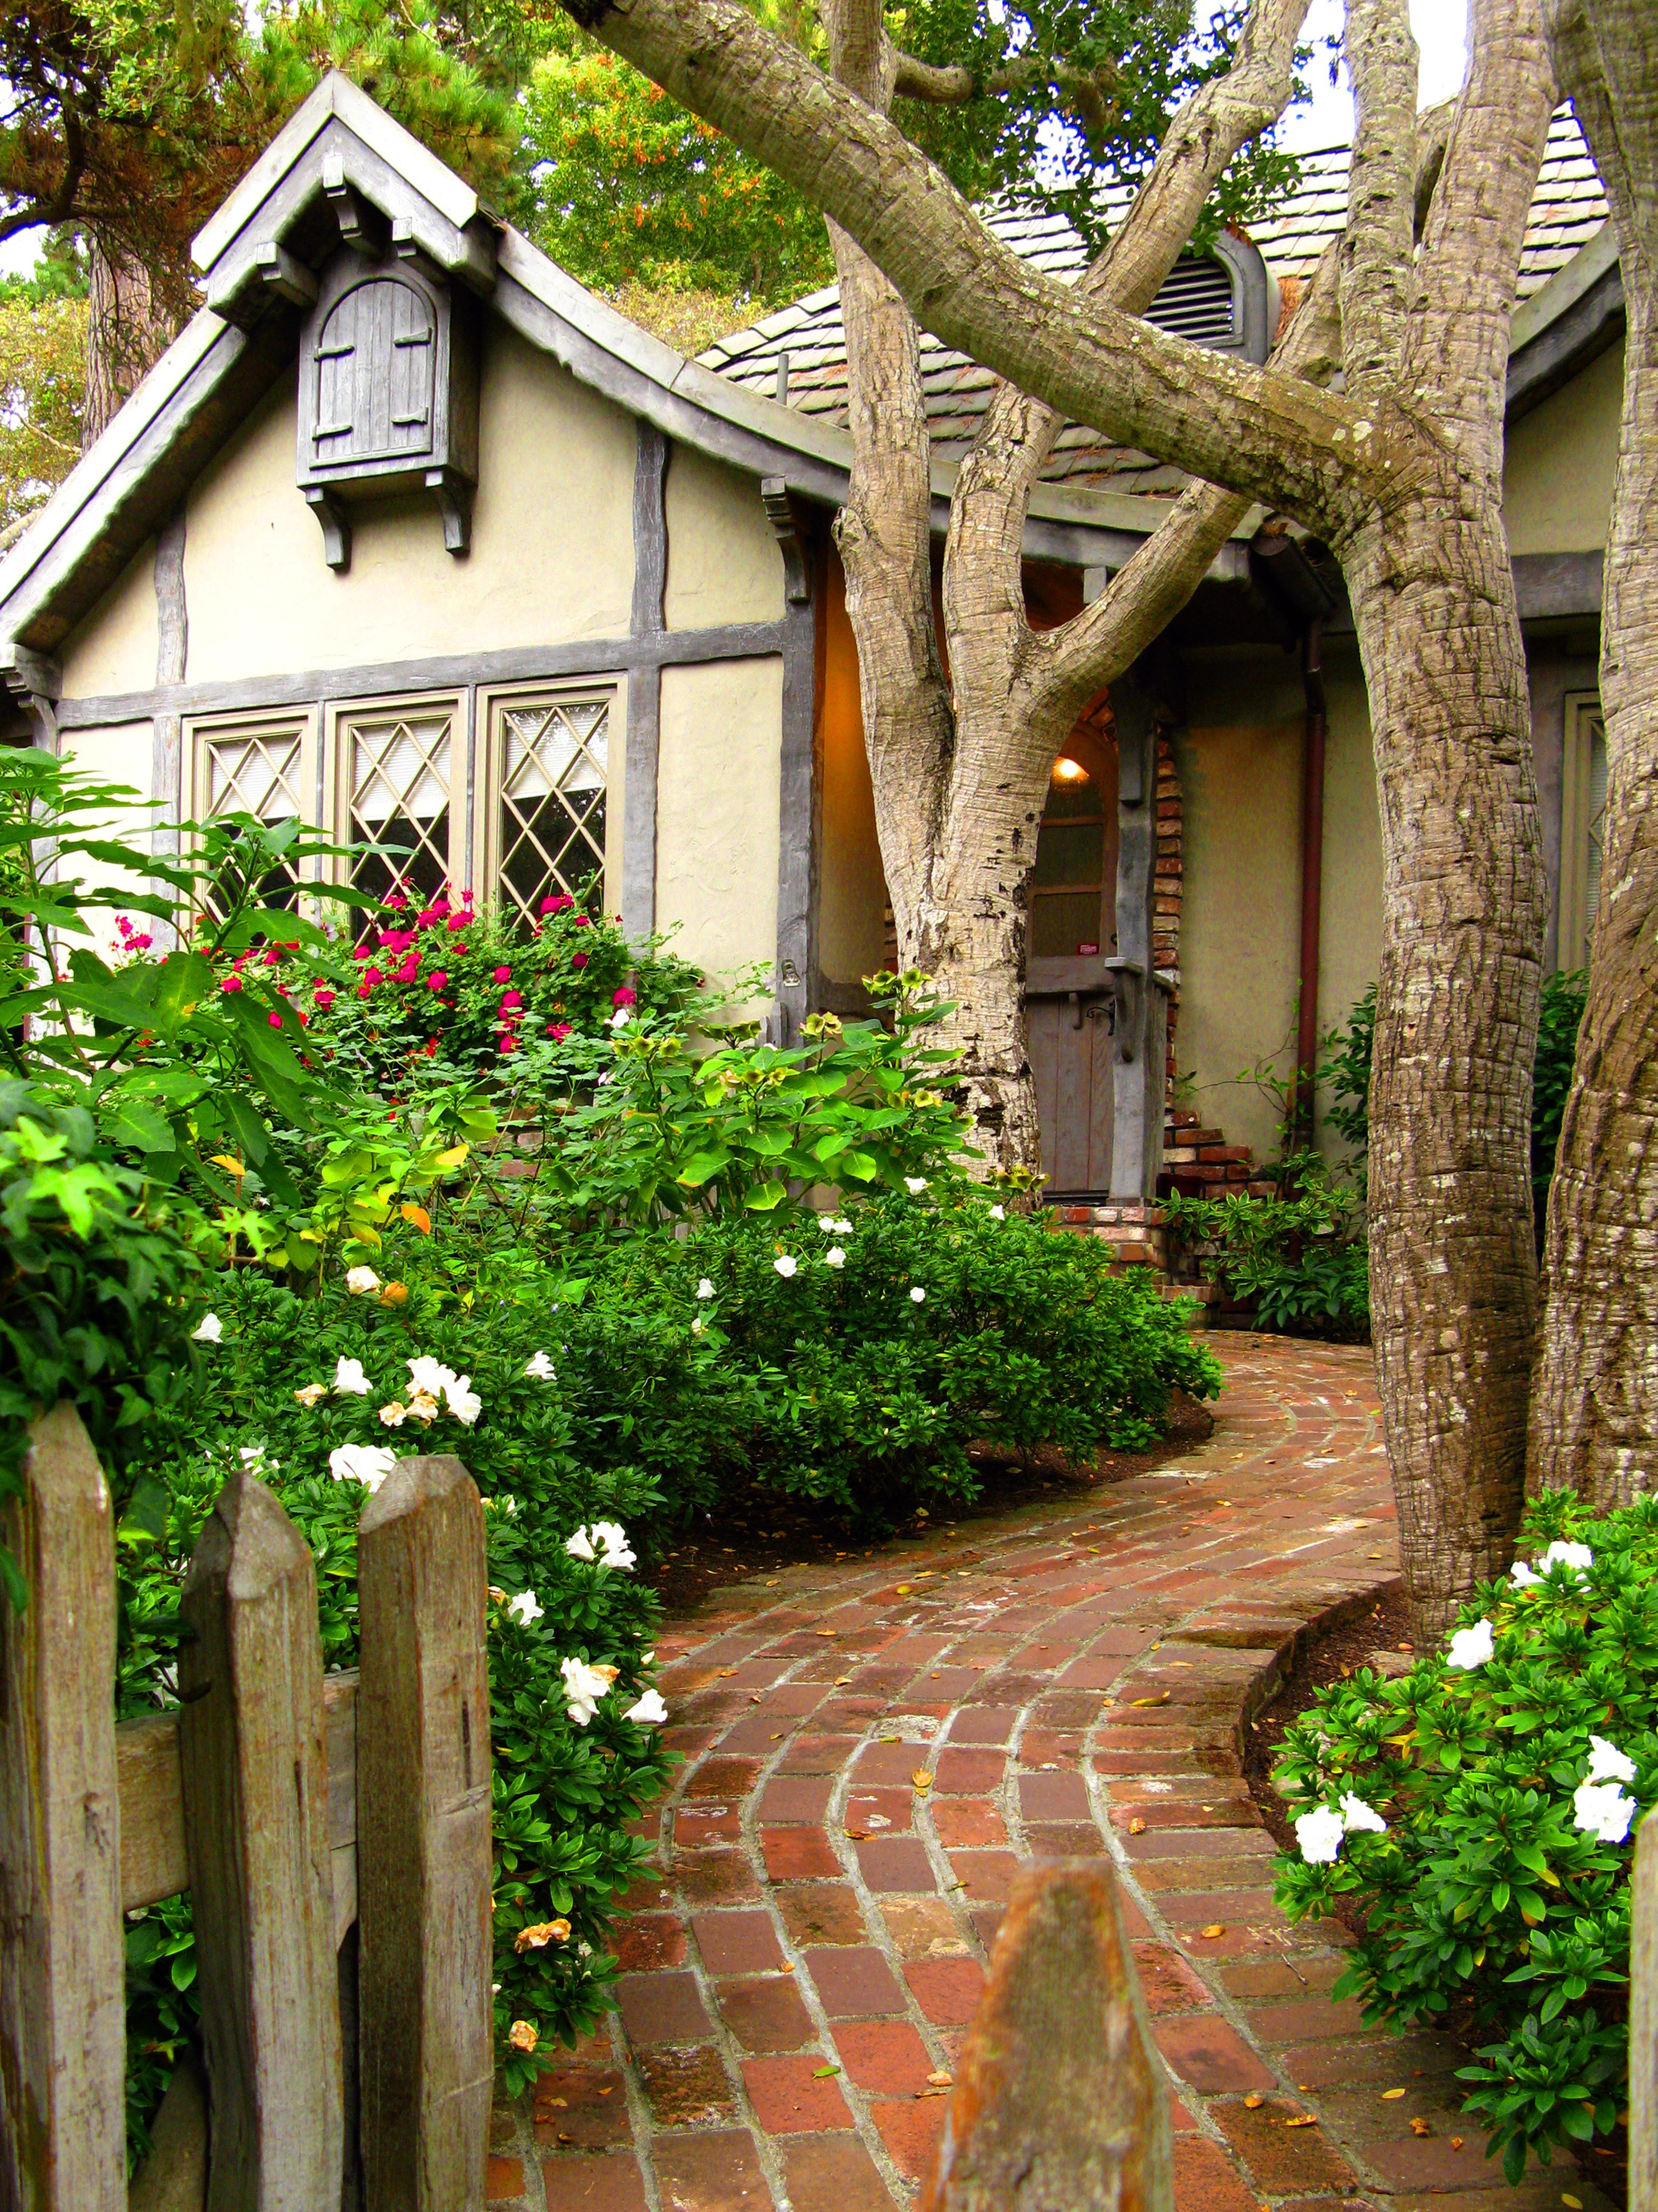 cottage carmel by the sea california cottage life cozy and love the winding brick path and storybook tudor style house of dreams cottage carmel california